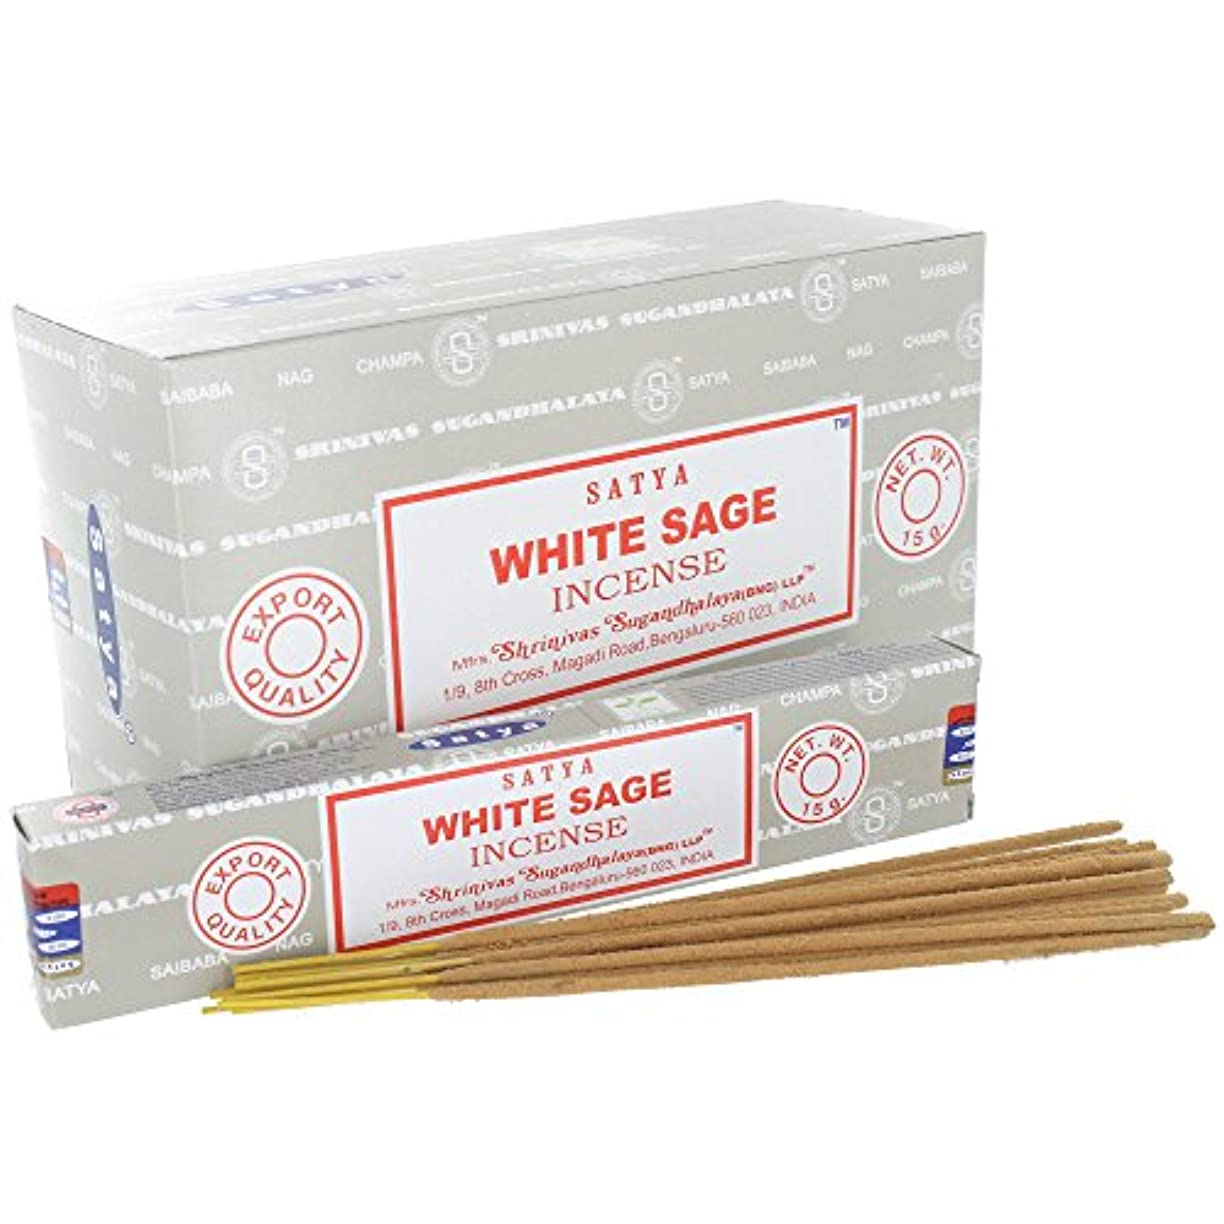 タイヤ薄める無謀Satya White Sage Incense Sticks (Box) 15g X 12 = 180g